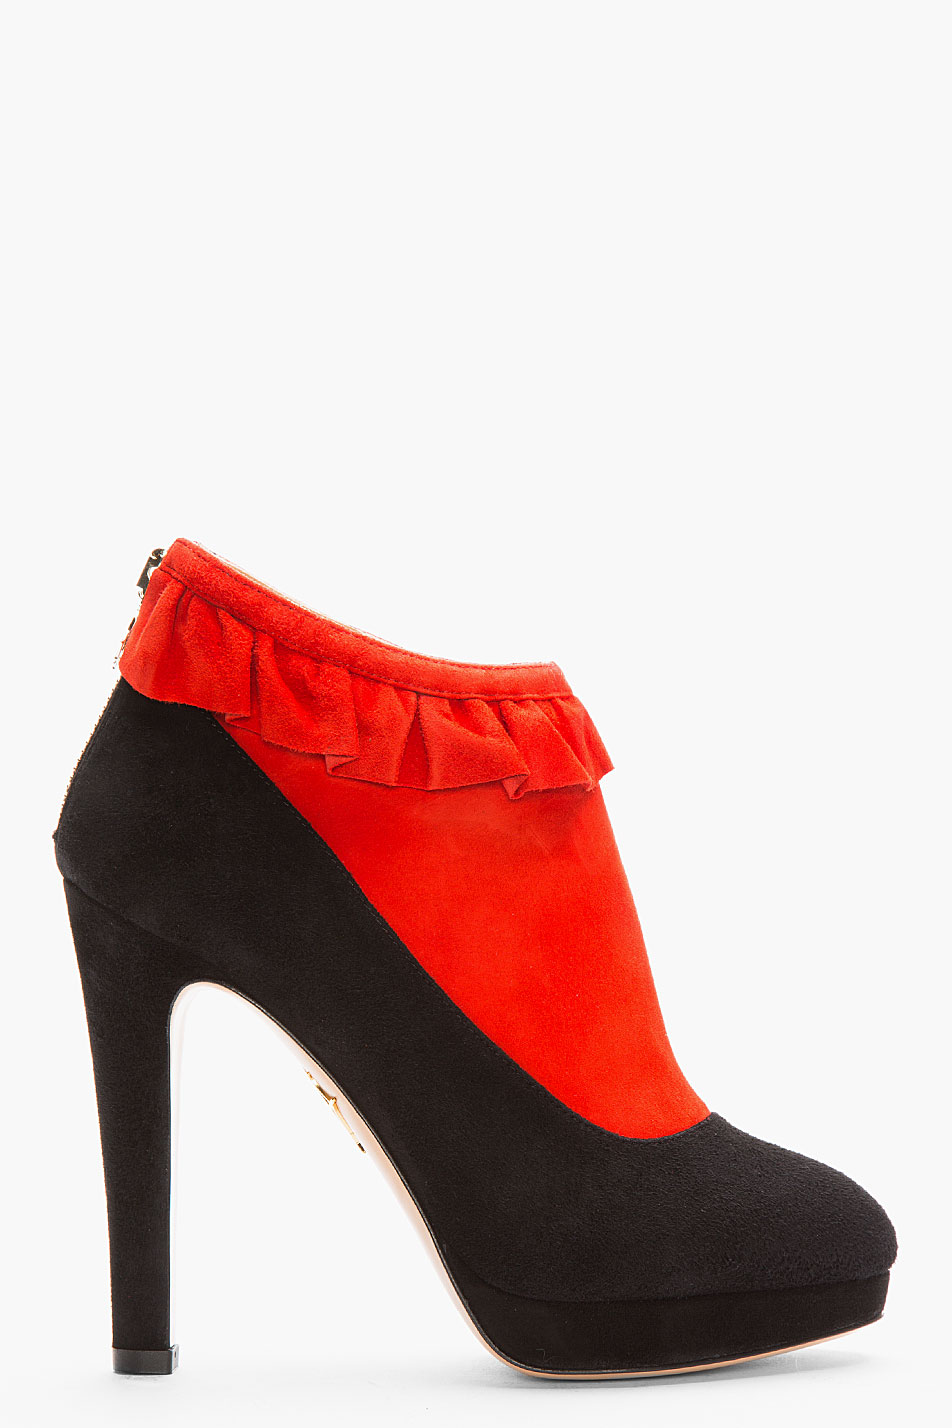 Charlotte olympia red bicolor suede trompe loeil ruffled emily boots